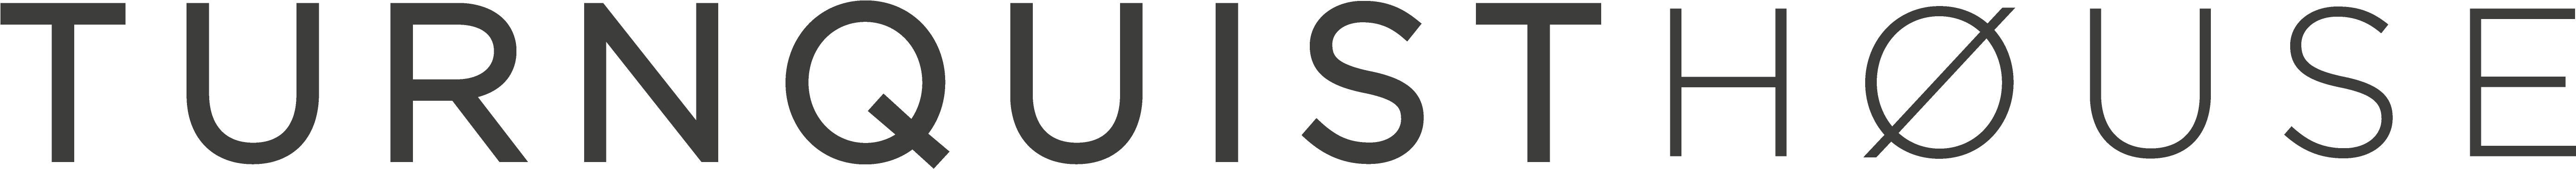 Turnquist House Wordmark